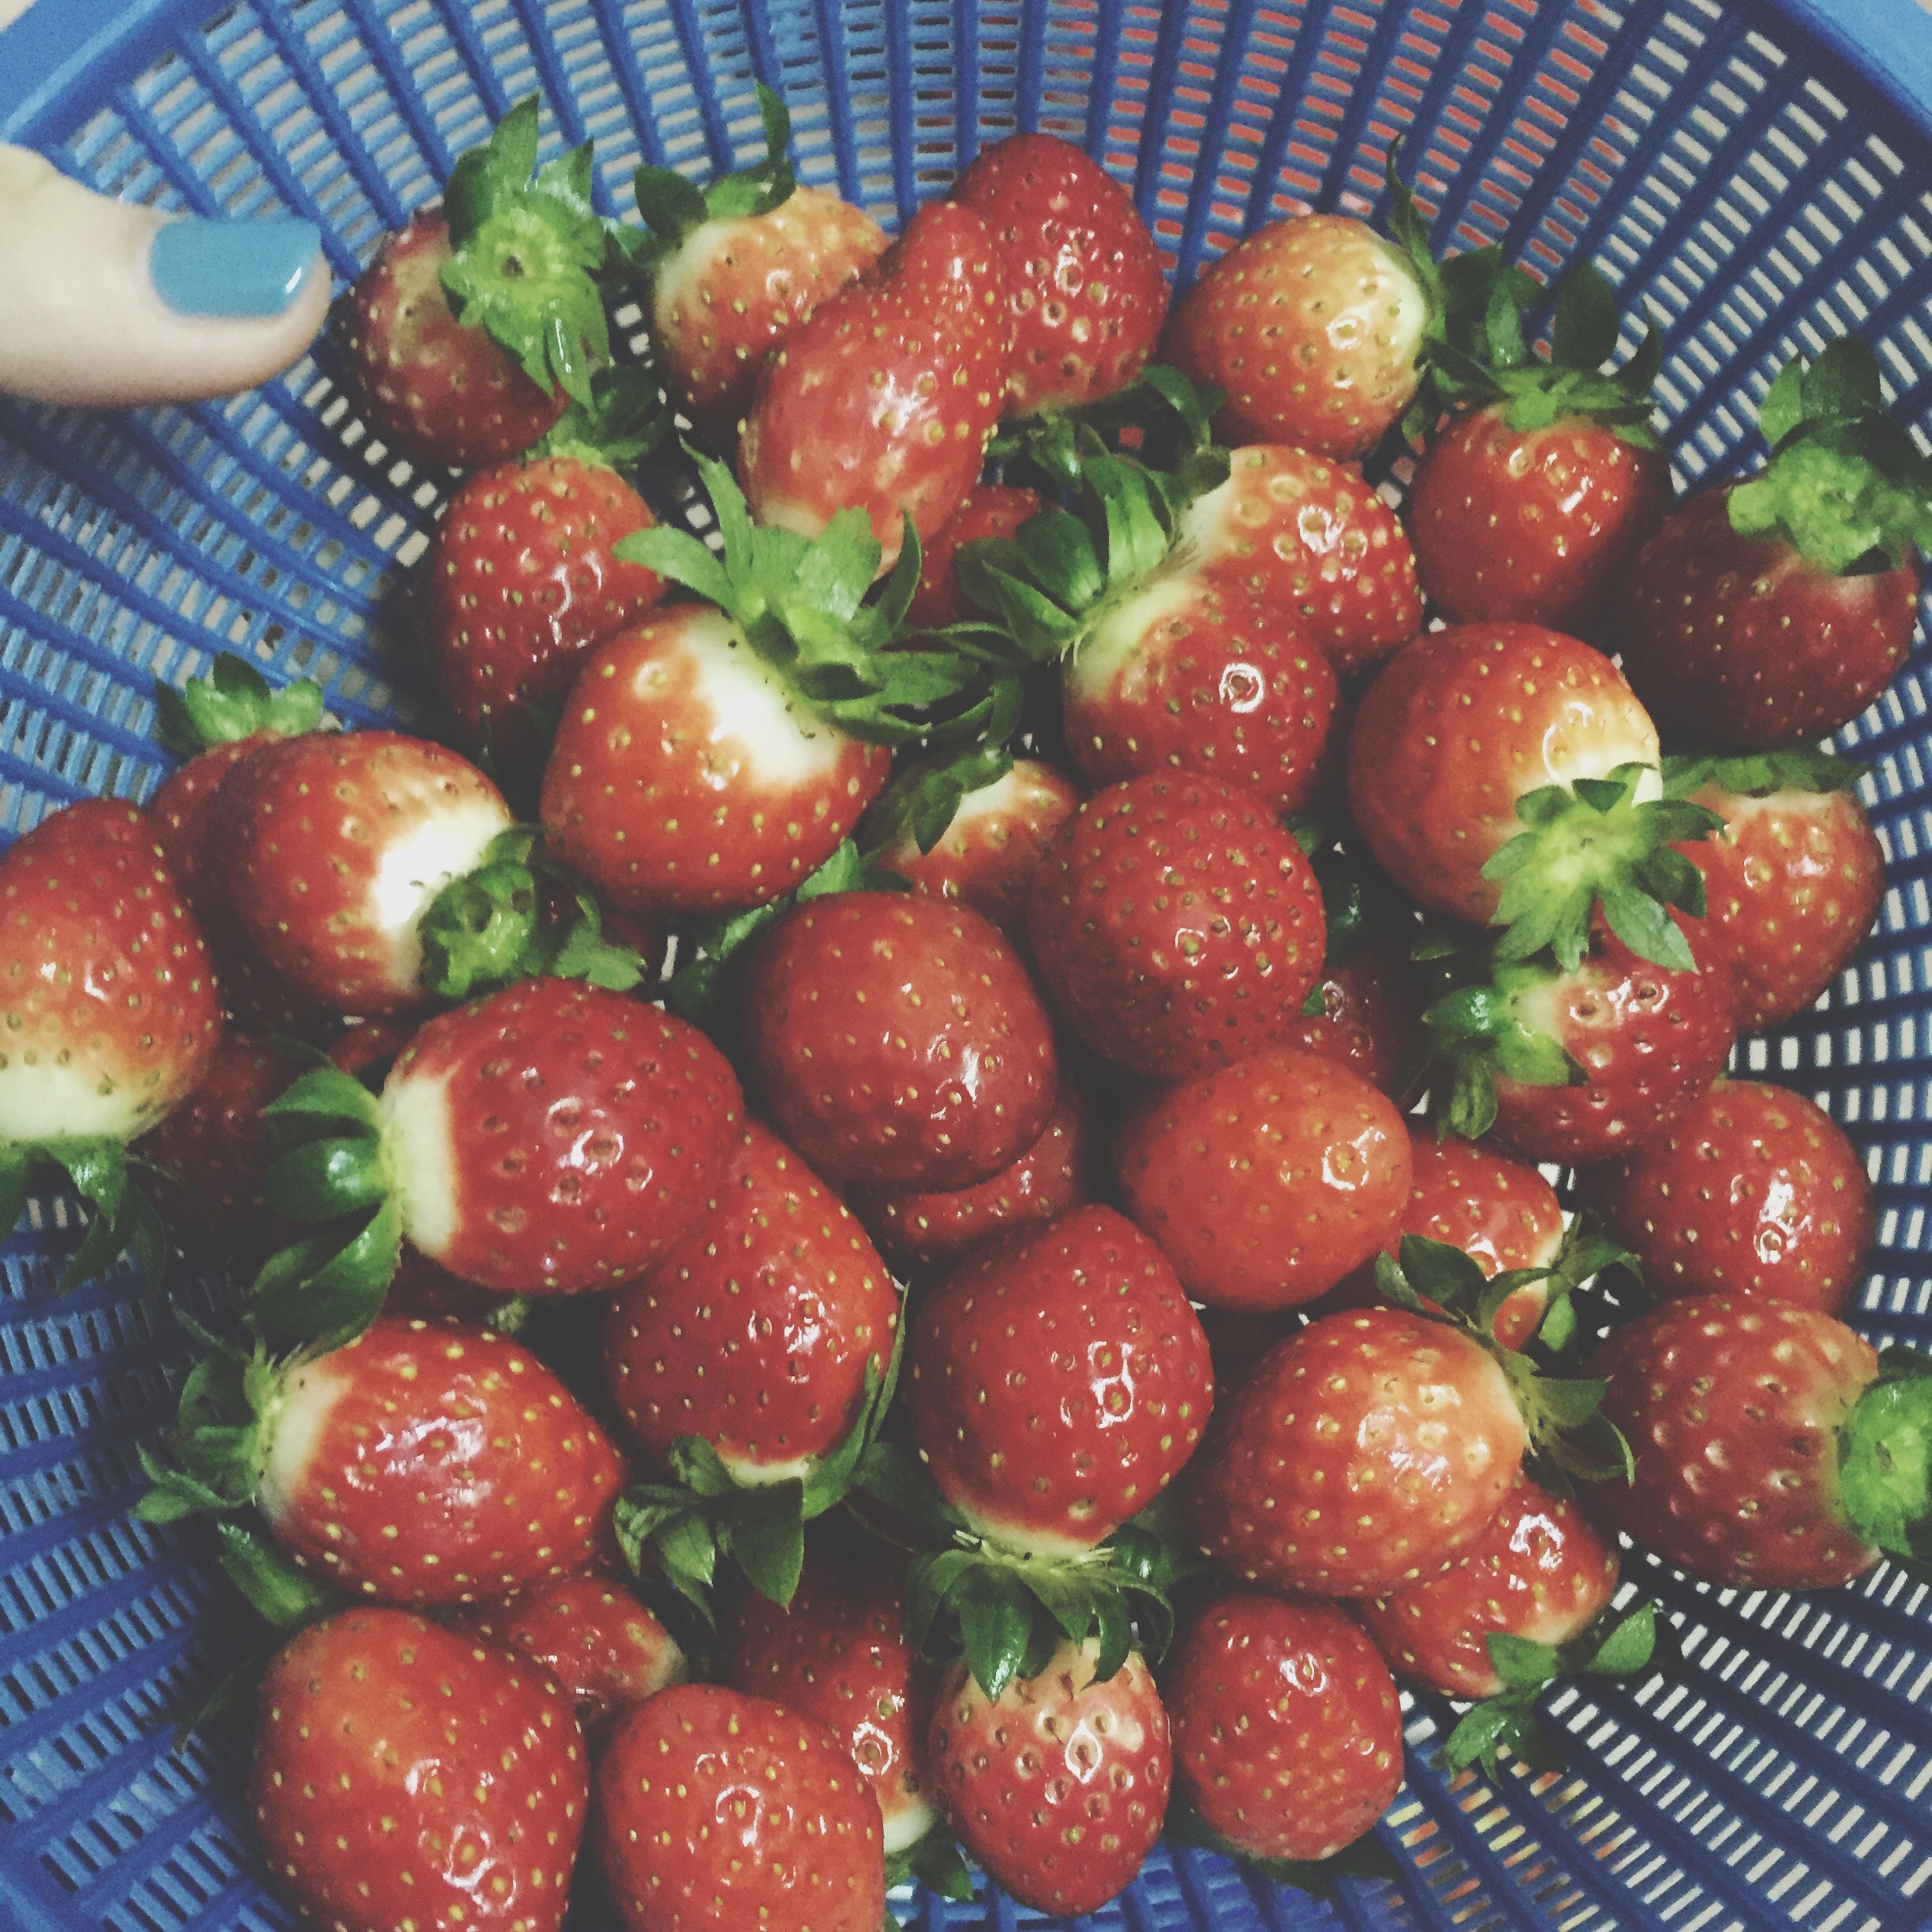 food and drink, food, freshness, healthy eating, fruit, indoors, red, strawberry, still life, abundance, close-up, large group of objects, high angle view, ready-to-eat, bowl, organic, healthy lifestyle, ripe, juicy, no people